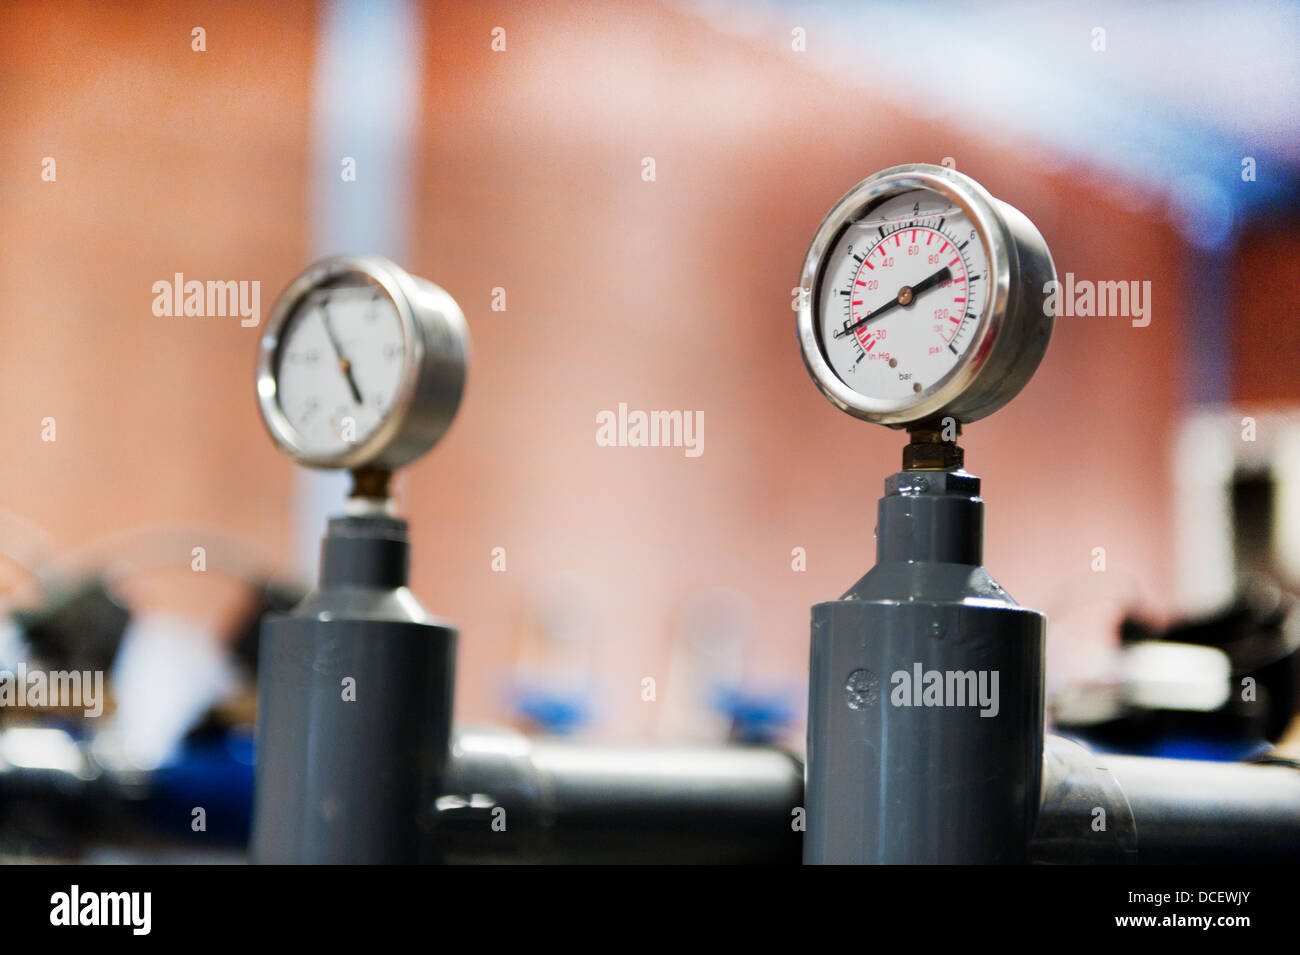 Industrial devices - Stock Image